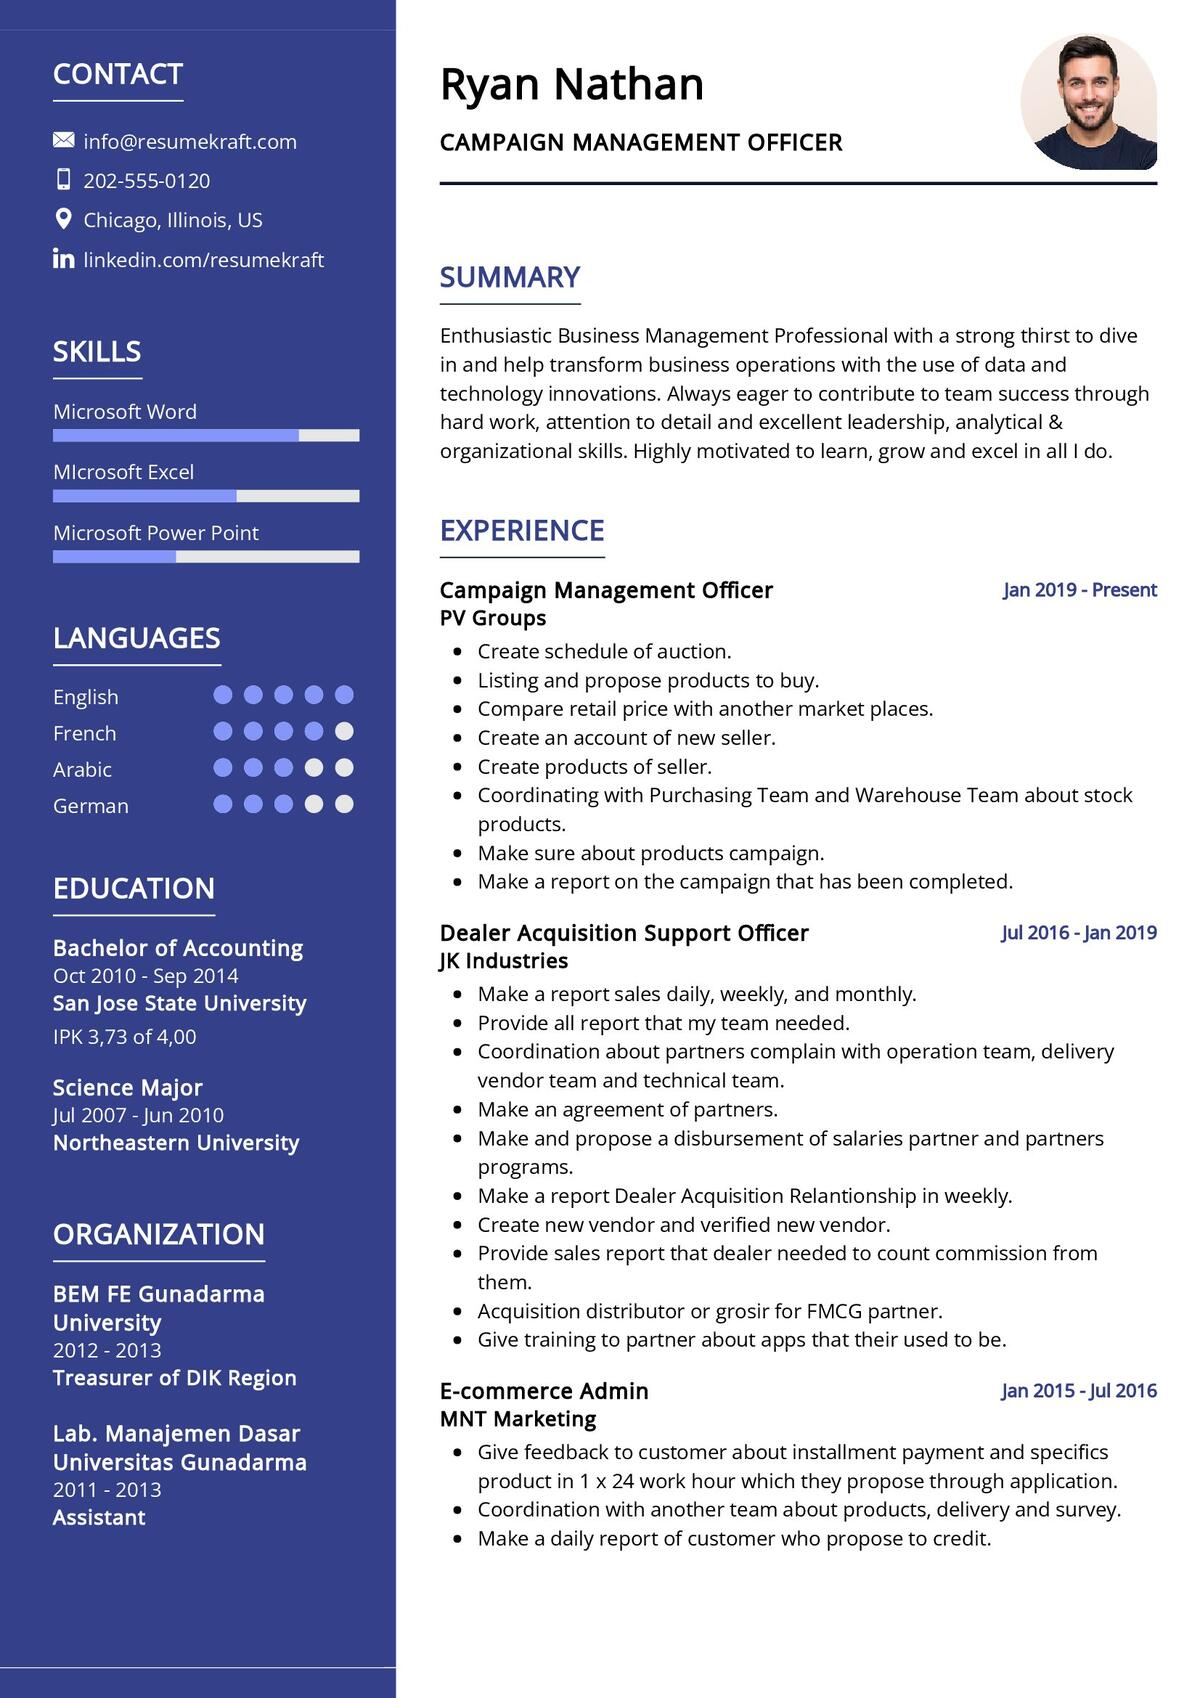 Campaign Management Officer CV Example